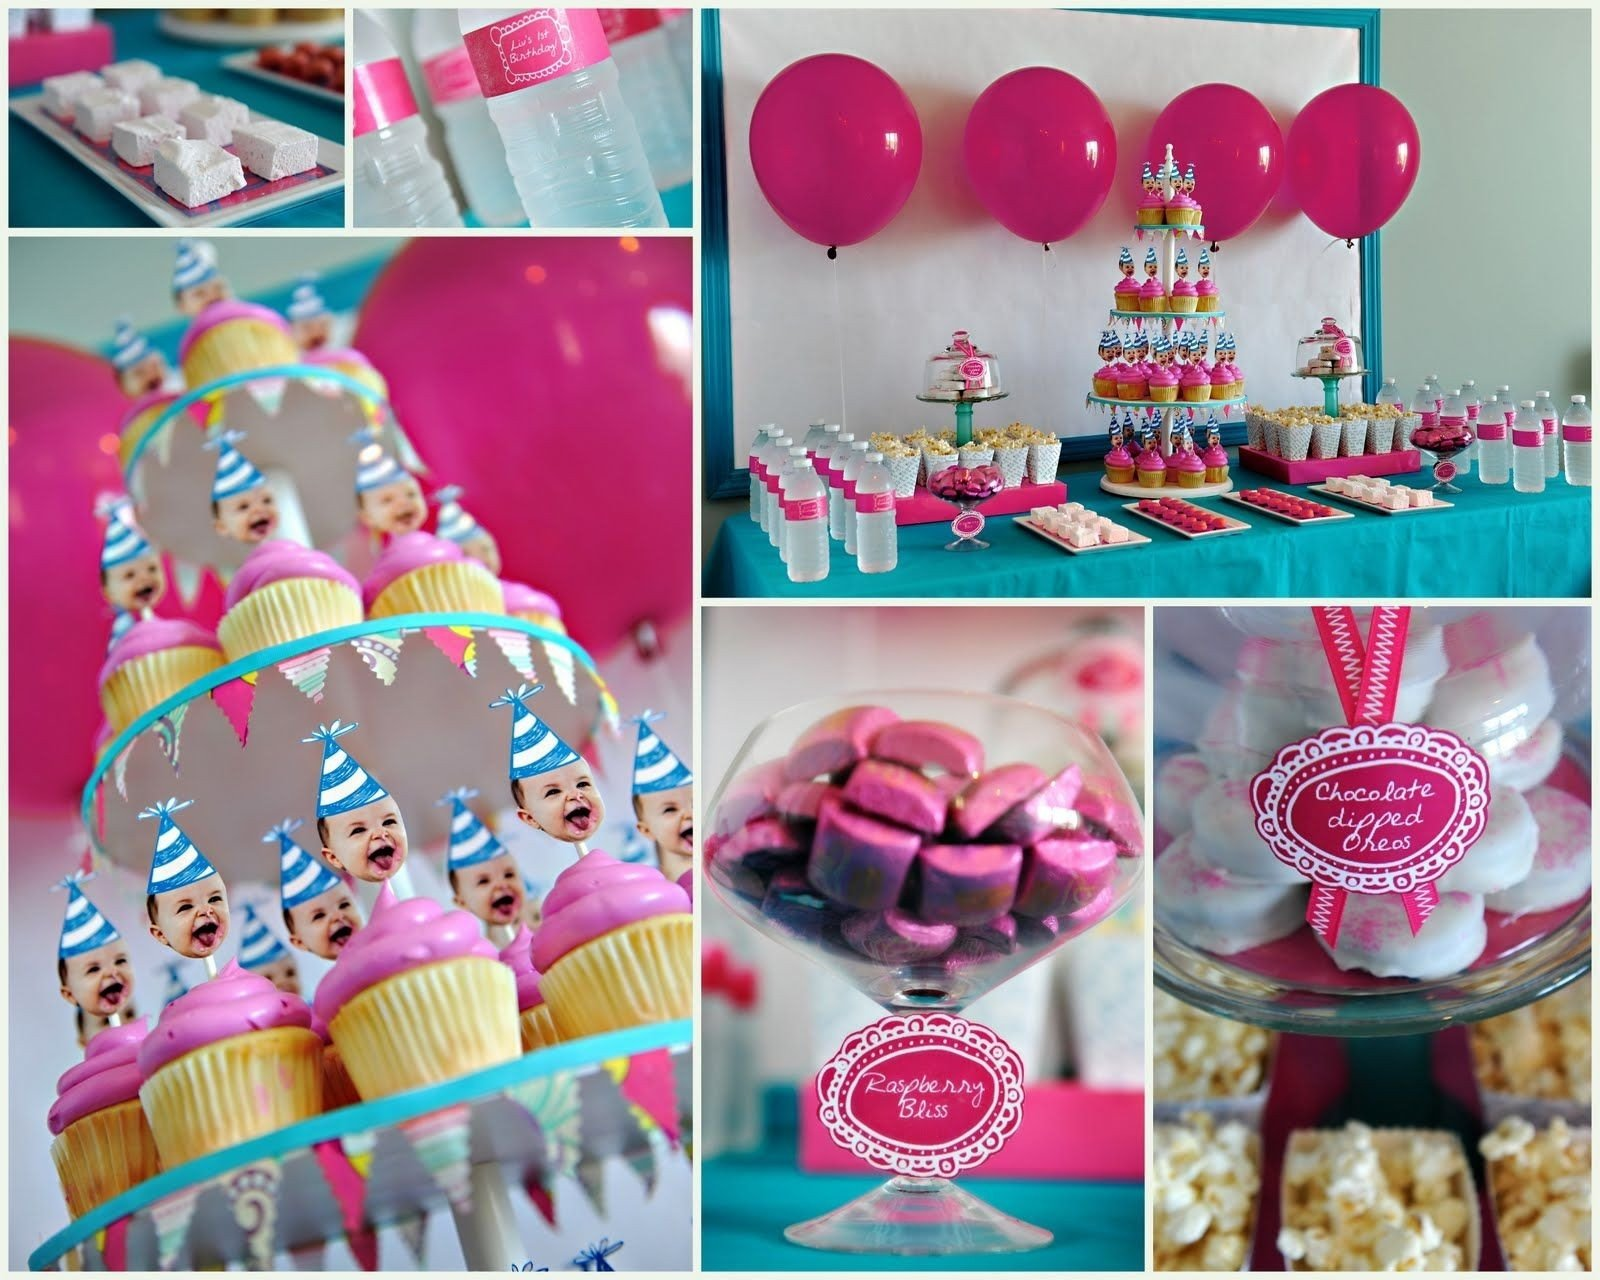 30 first birthday cake and party ideas [easy] design ideas of